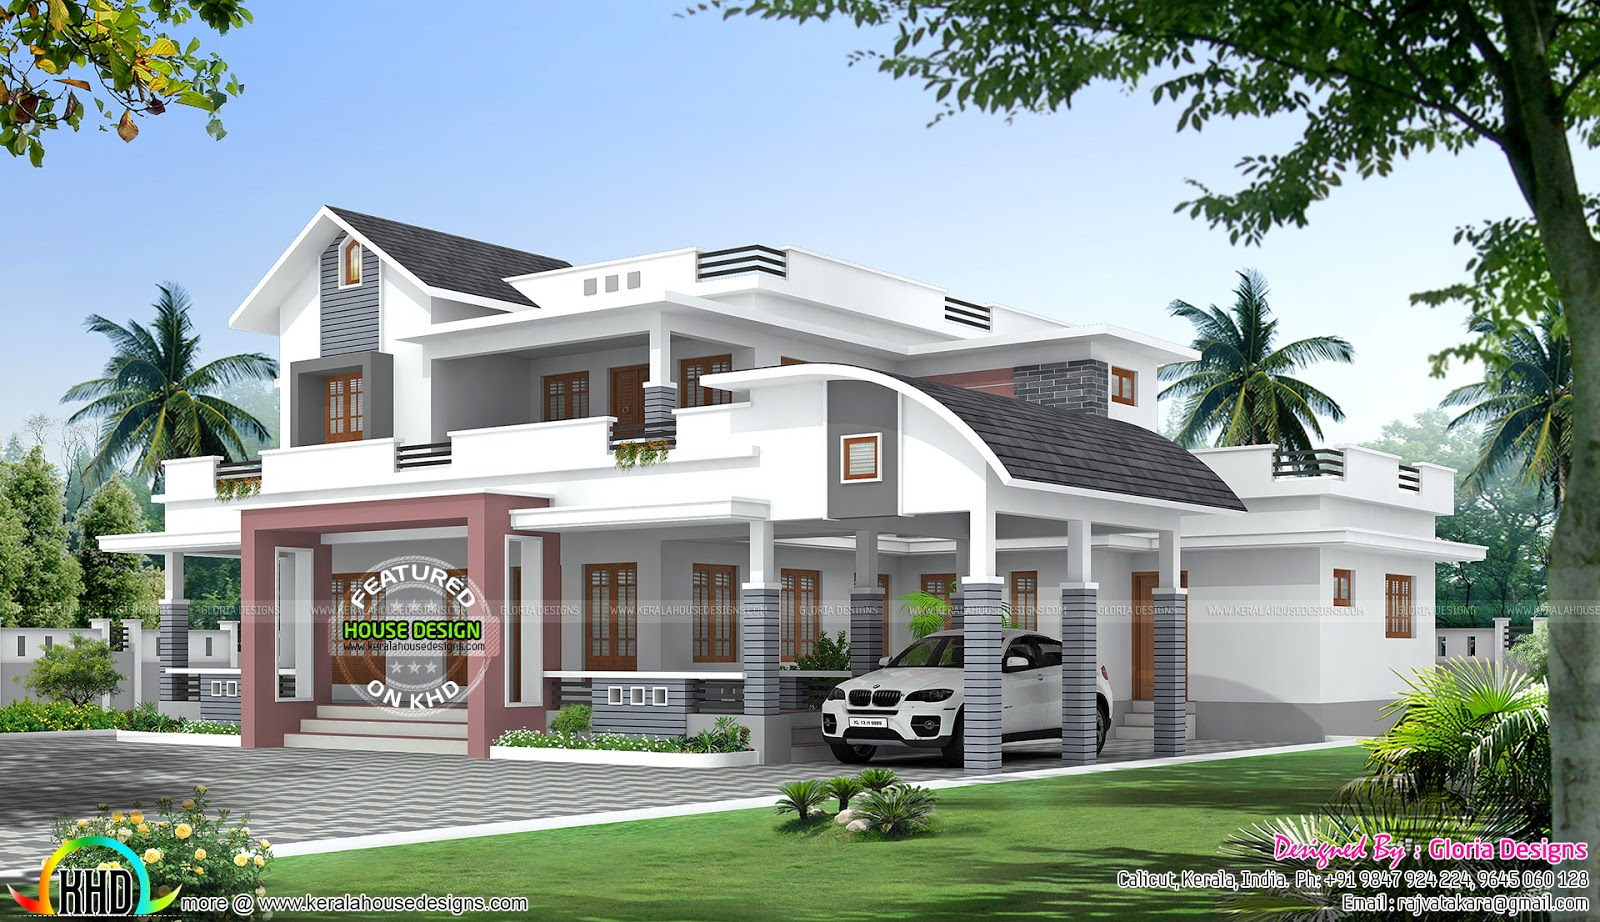 Marvelous 4 Bedroom Mixed Roof Home Part - 8: Attached Bedrooms : 4. Design Style : Modern Mix Roof. Facility Details.  Read More » Please Follow Kerala Home Design